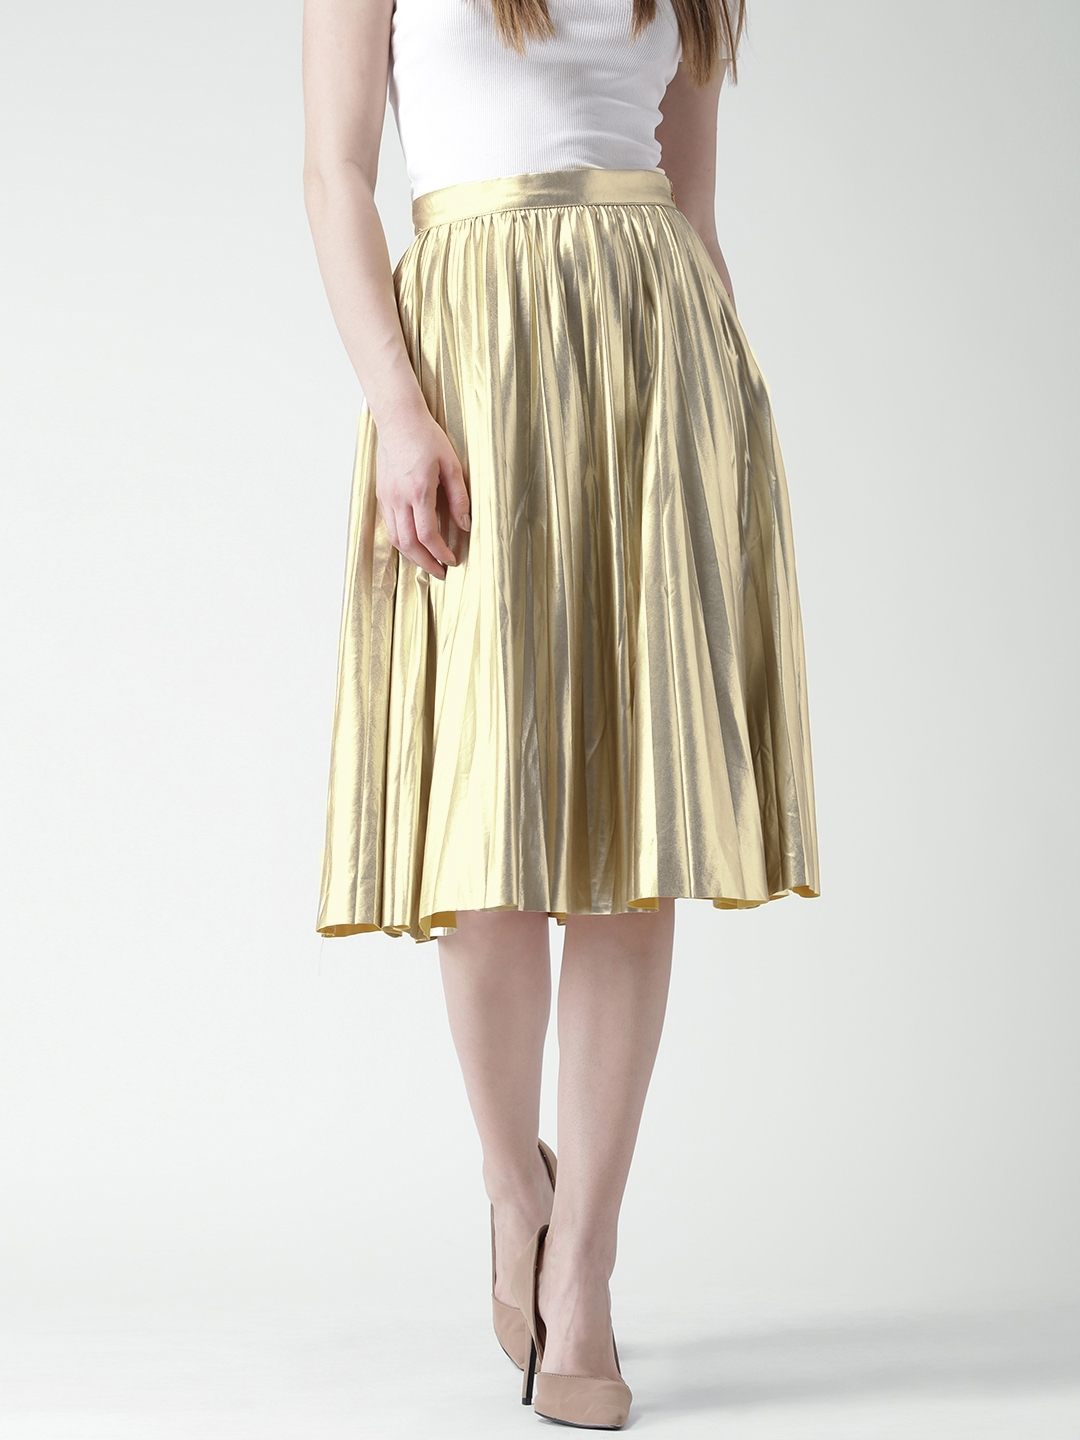 2691dc57a9 Buy FOREVER 21 Golden Midi Flared Skirt - Skirts for Women 1637637 ...